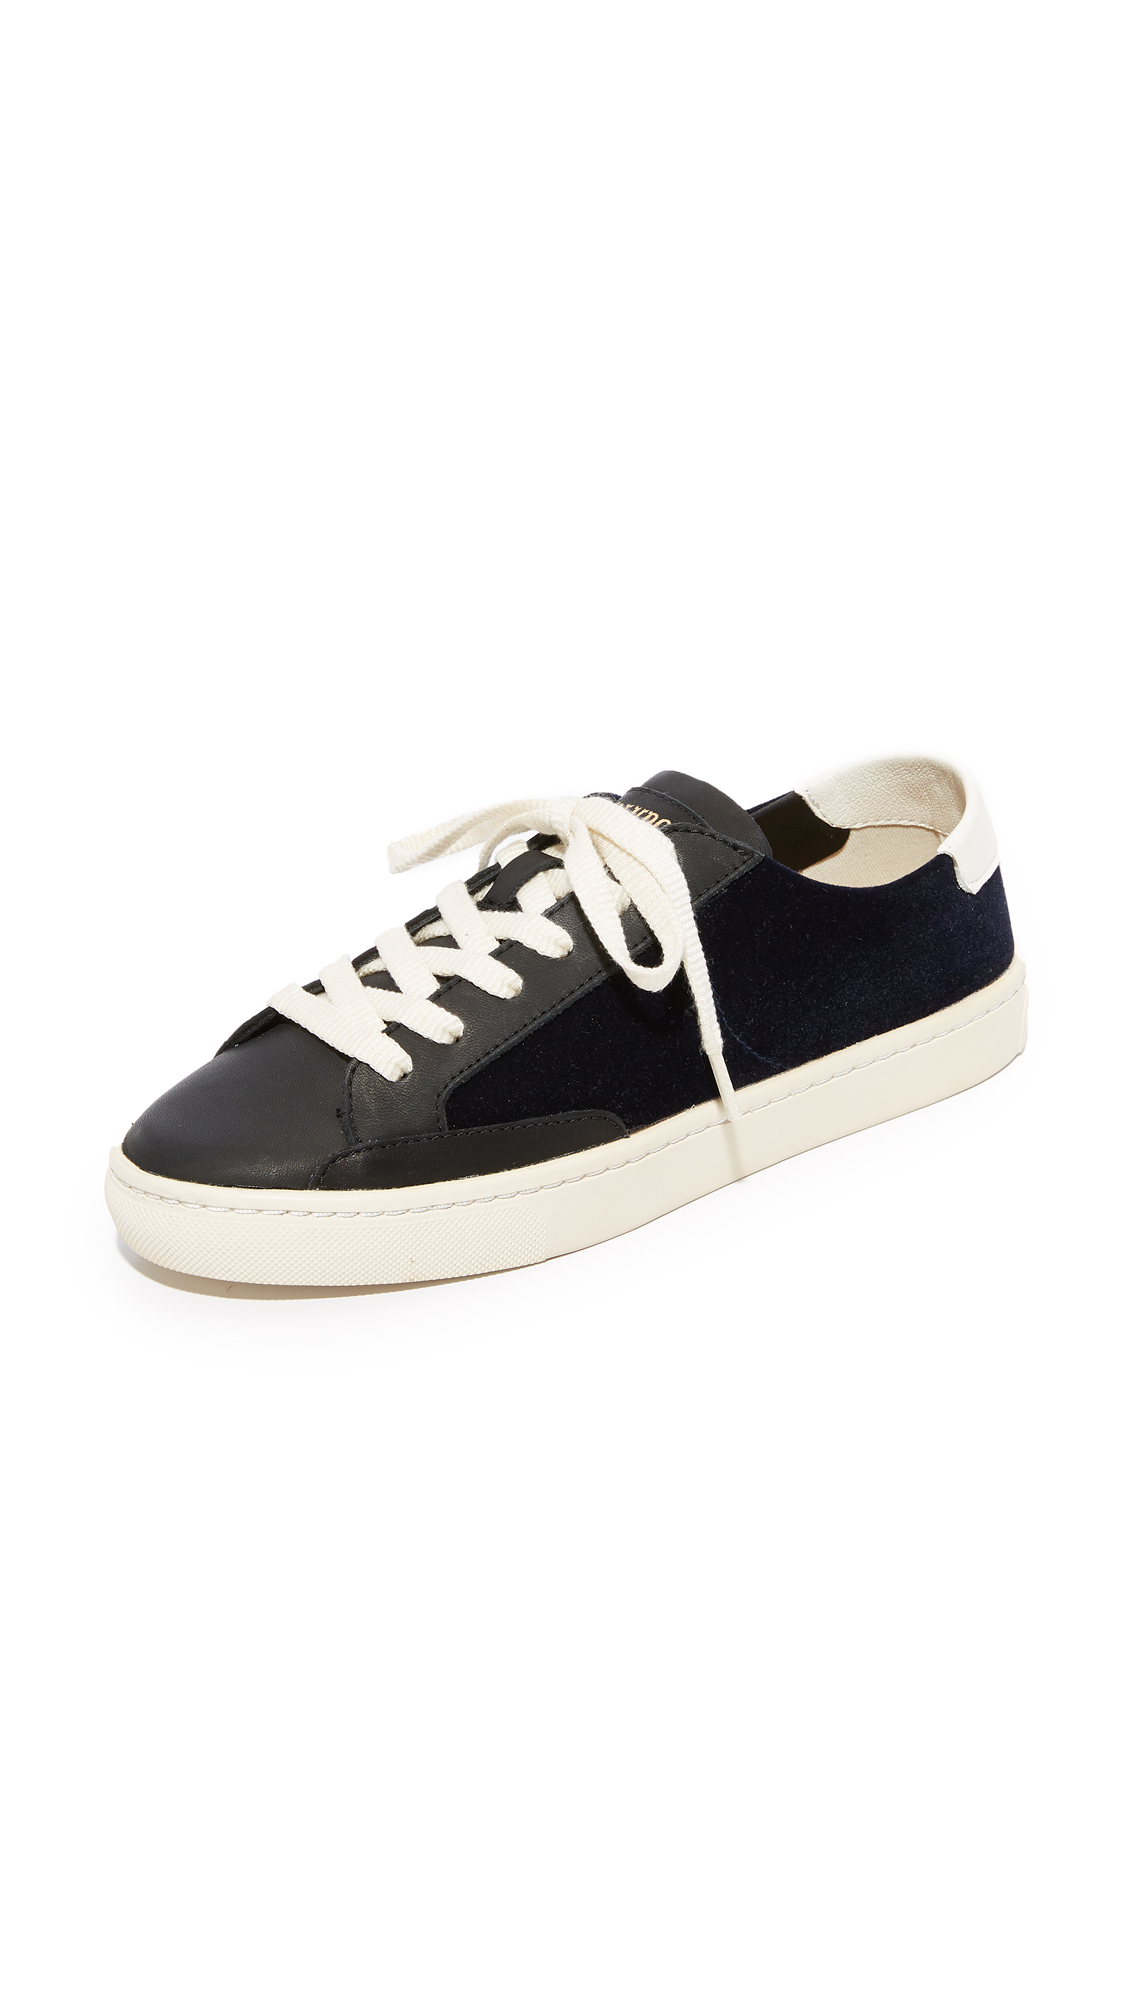 Soludos Ibiza Classic Lace Up Sneakers - Navy/Black